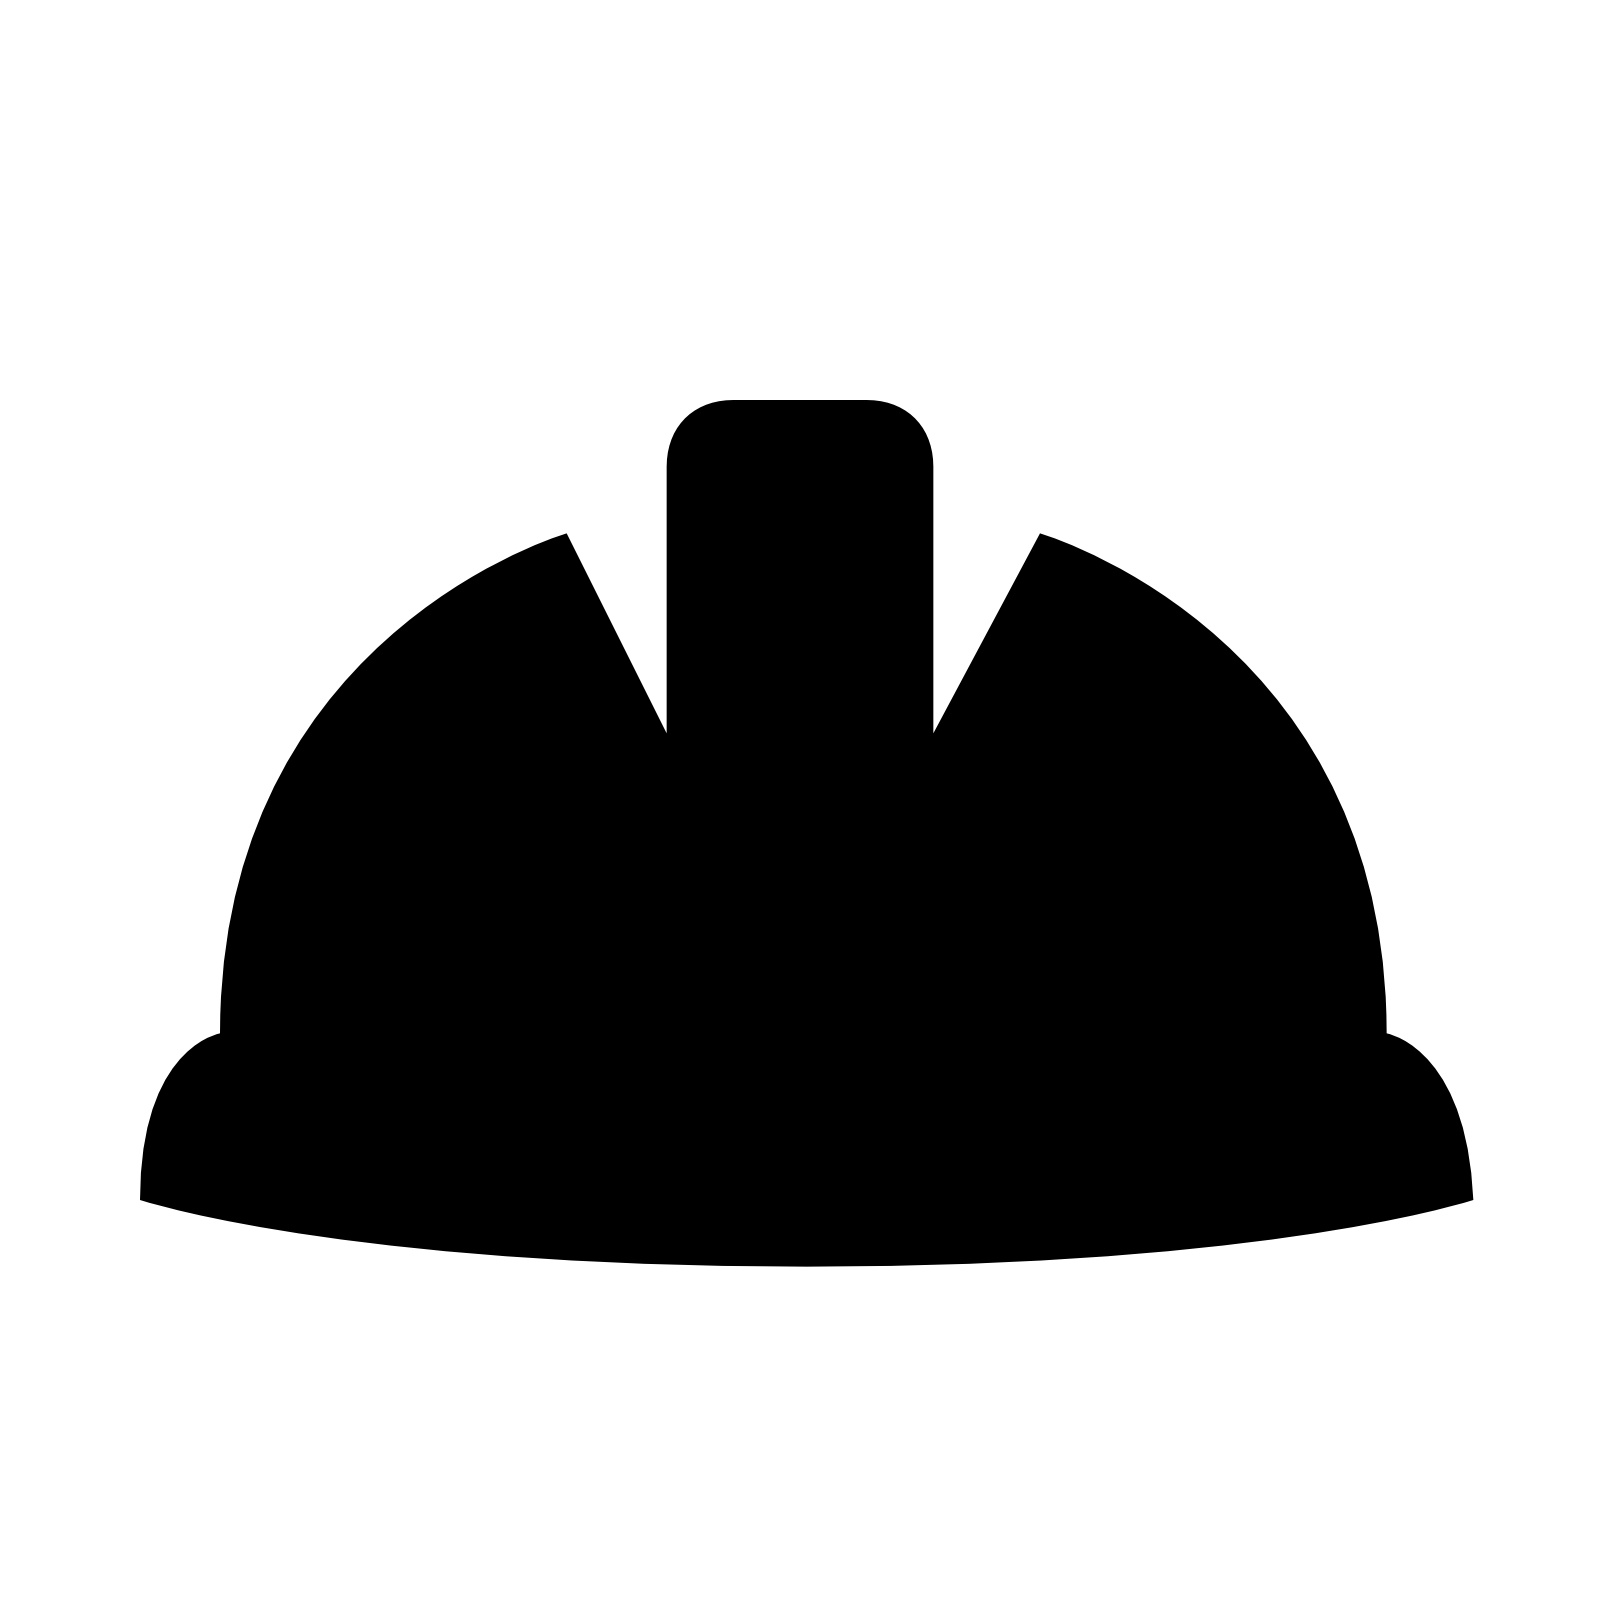 Electrician clipart hard hat worker. Silhouette at getdrawings com